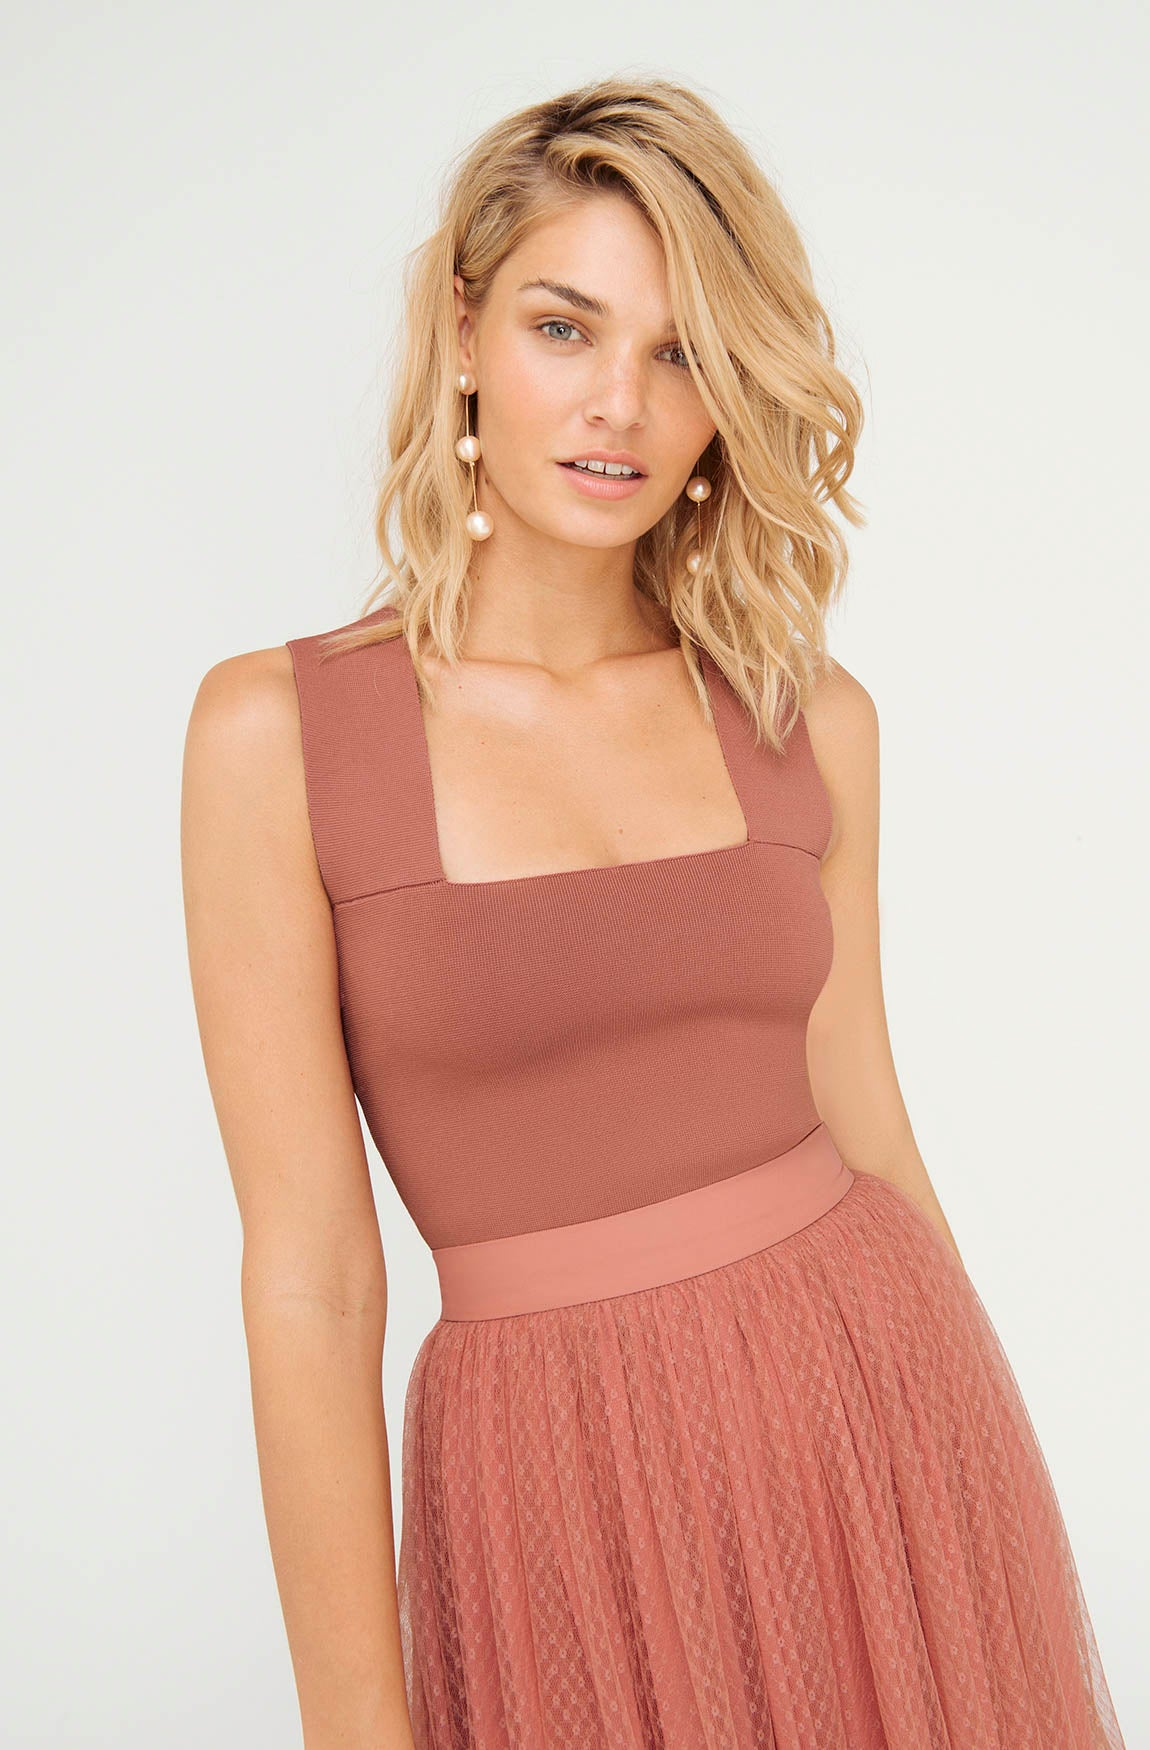 AMALFI KNIT TOP